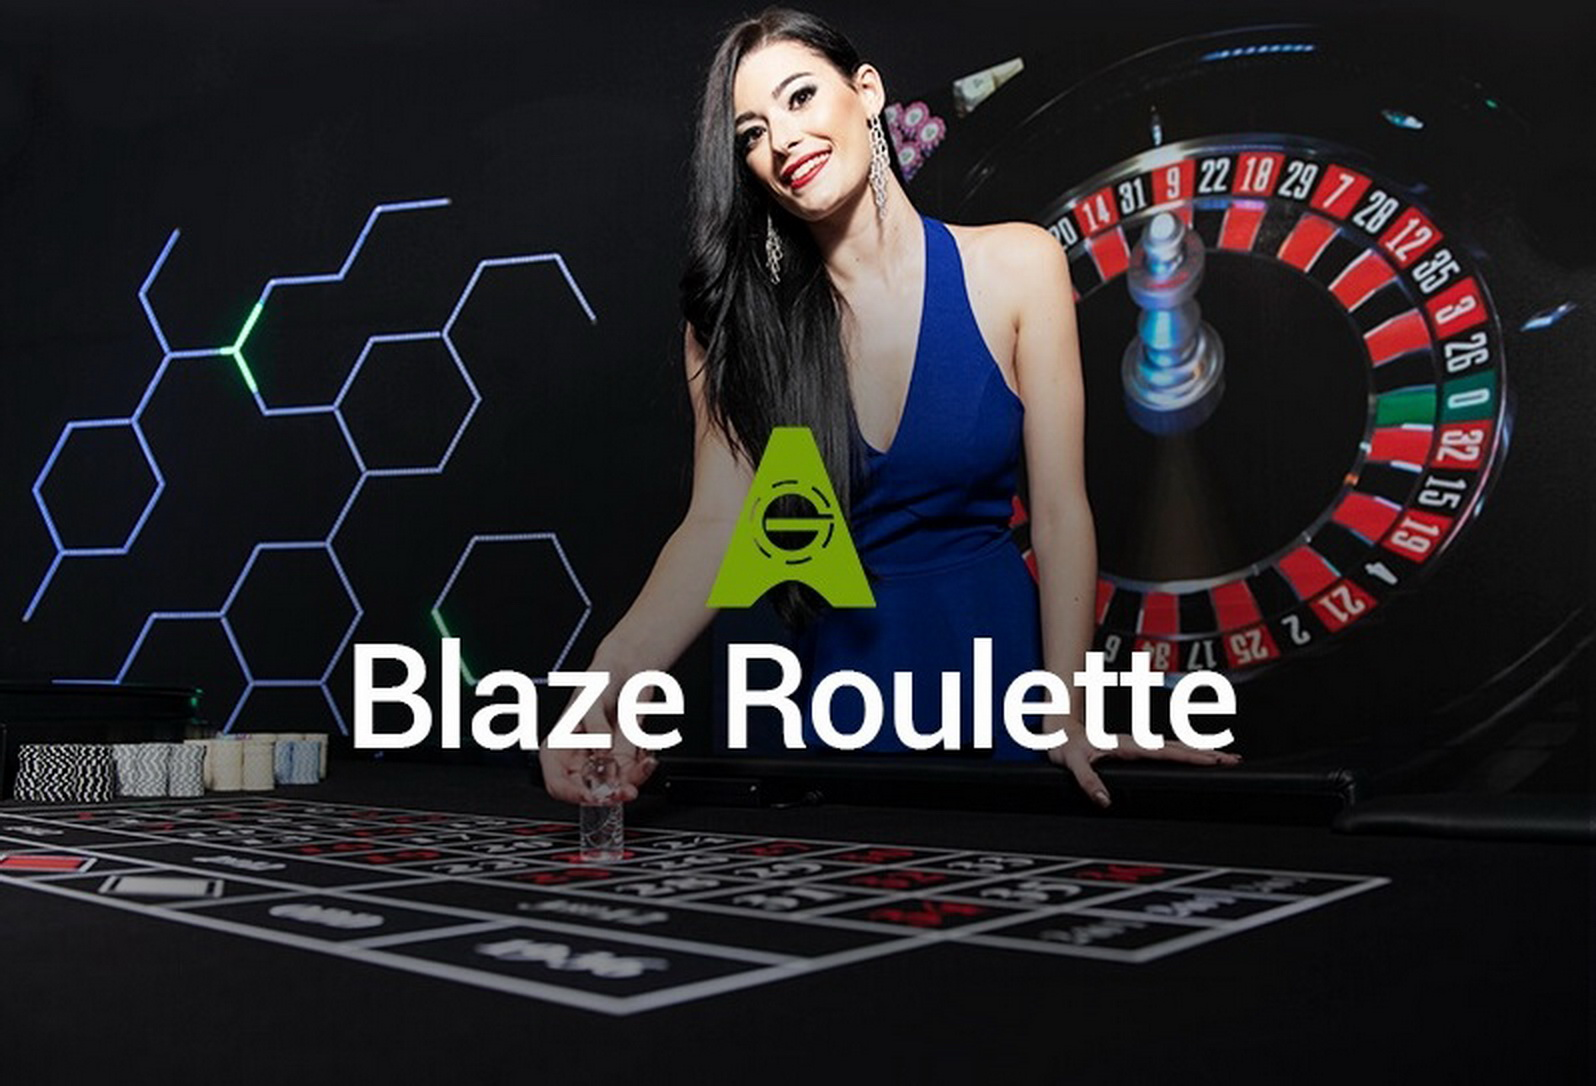 Se Blaze Roulette	 Online Slot Demo Game, Authentic Gaming